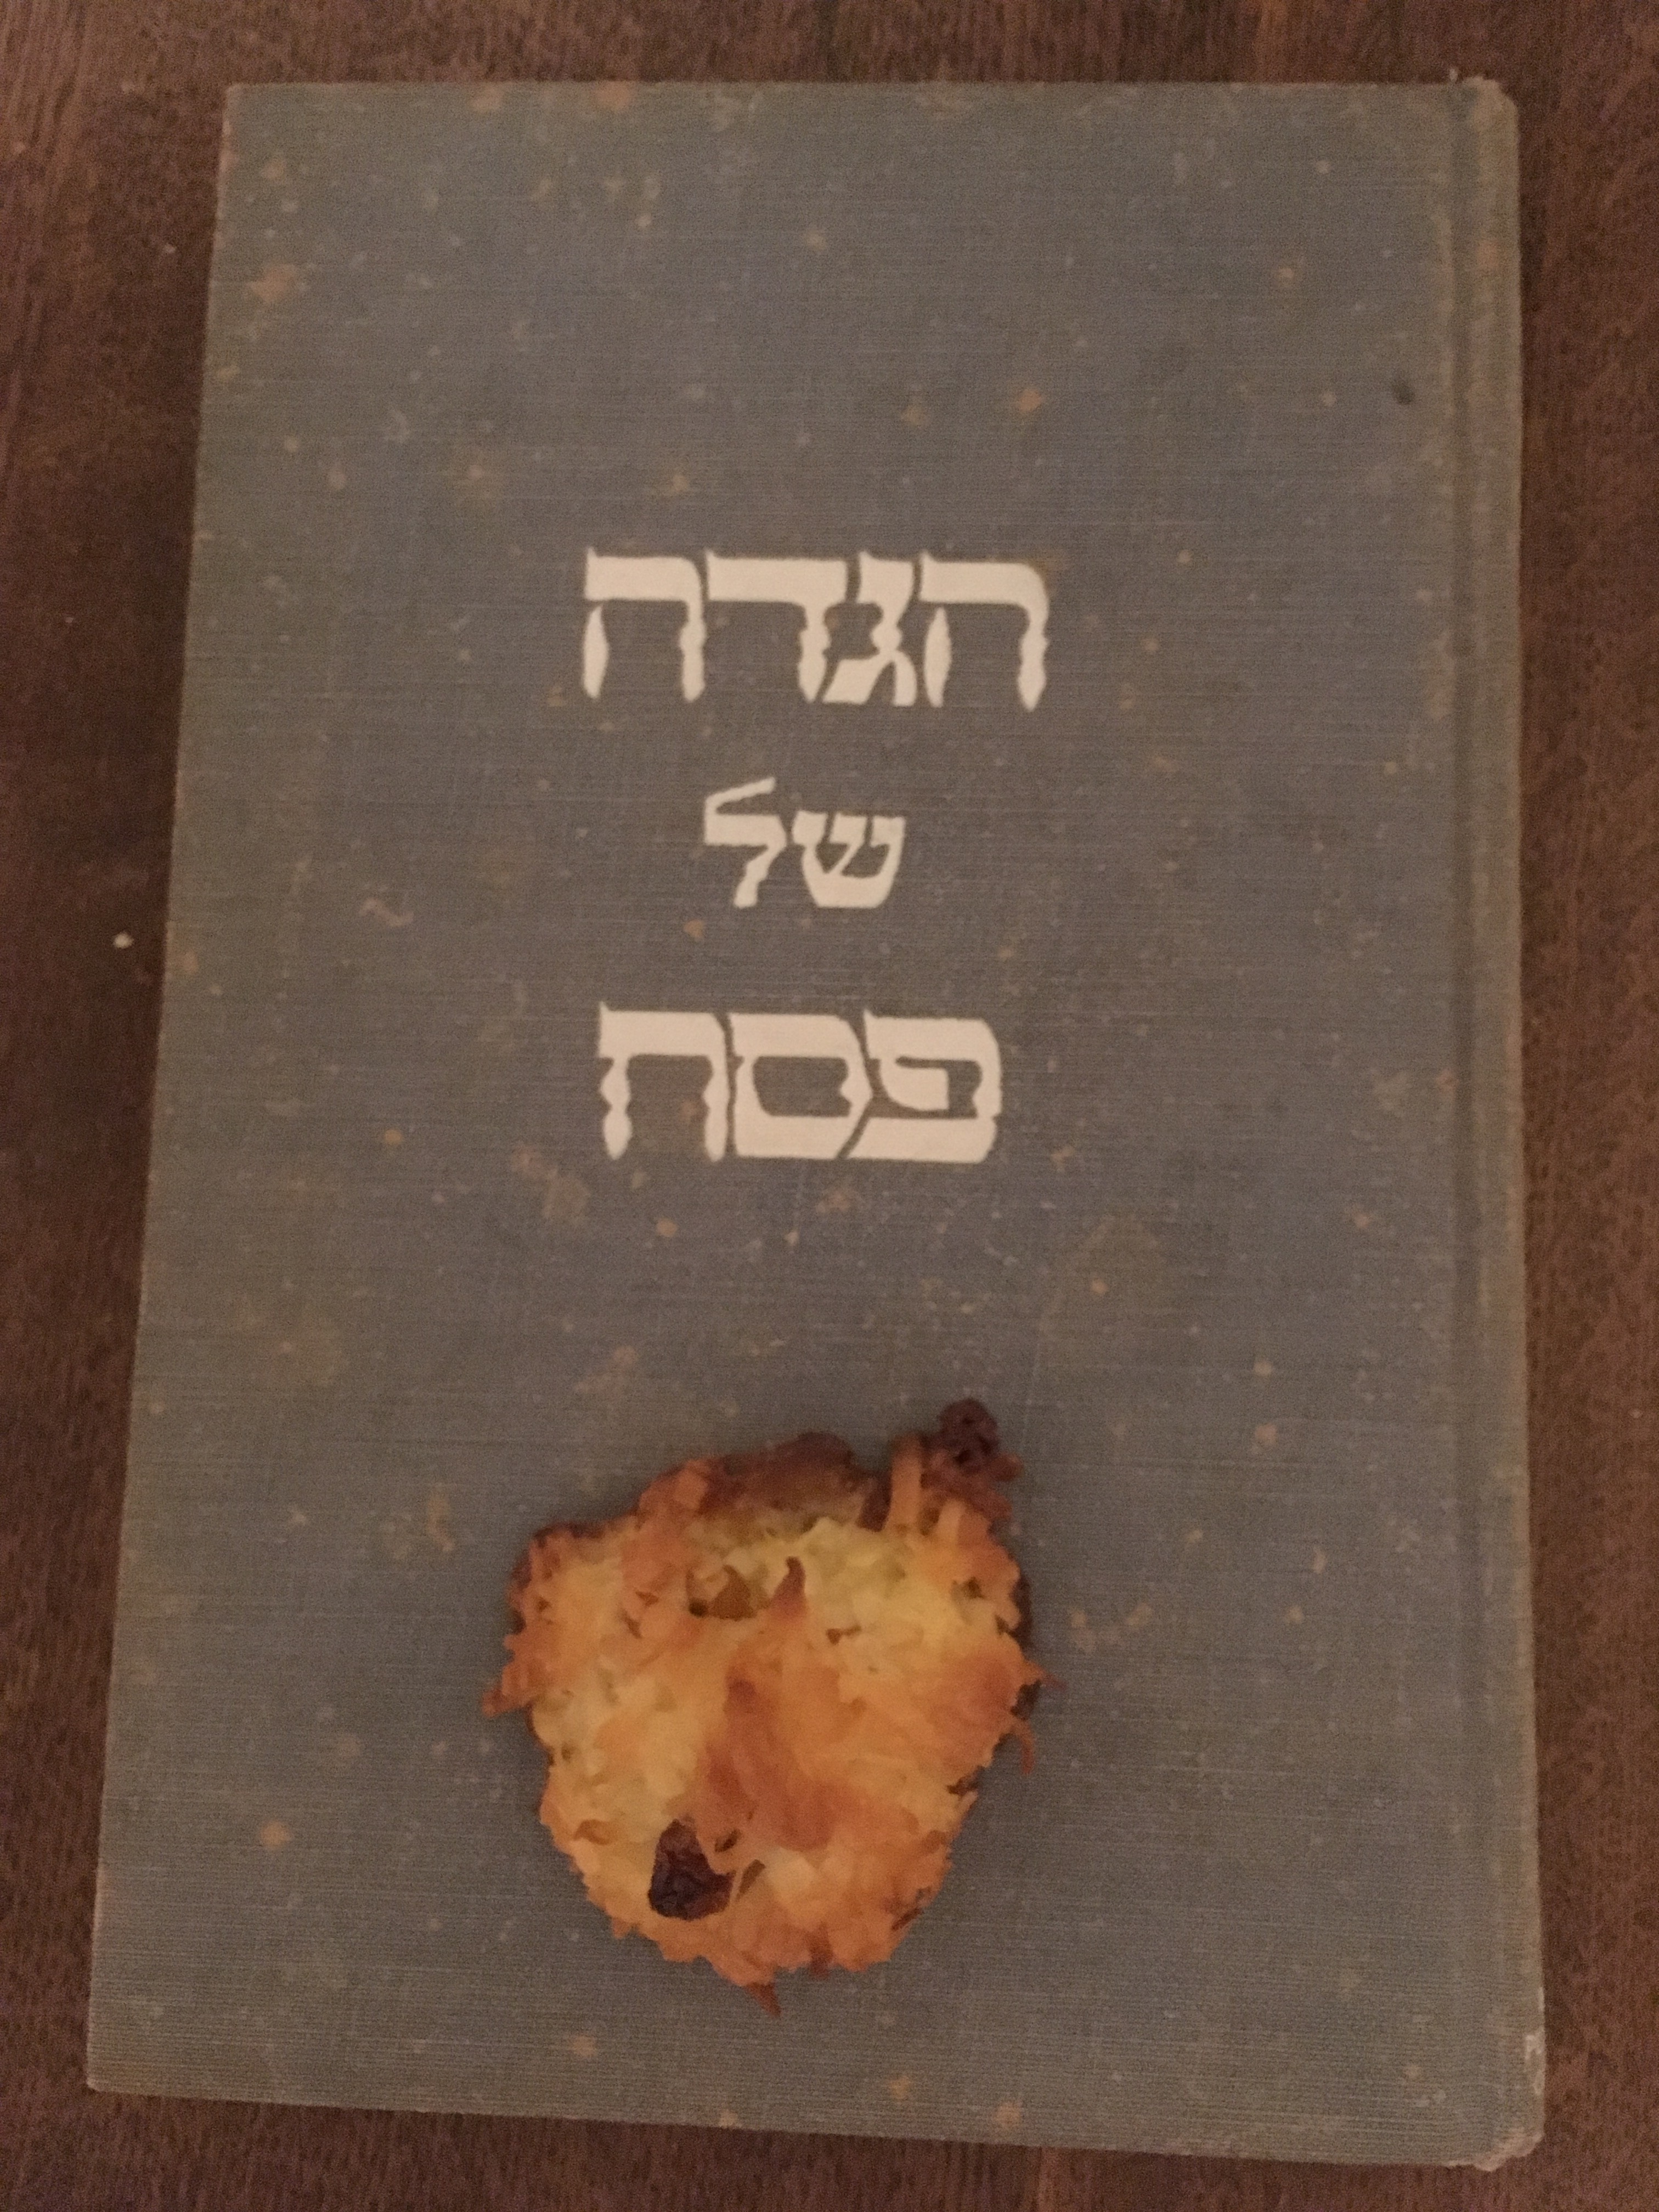 A macaroon sitting under the title on the cover of a haggadah for Passover